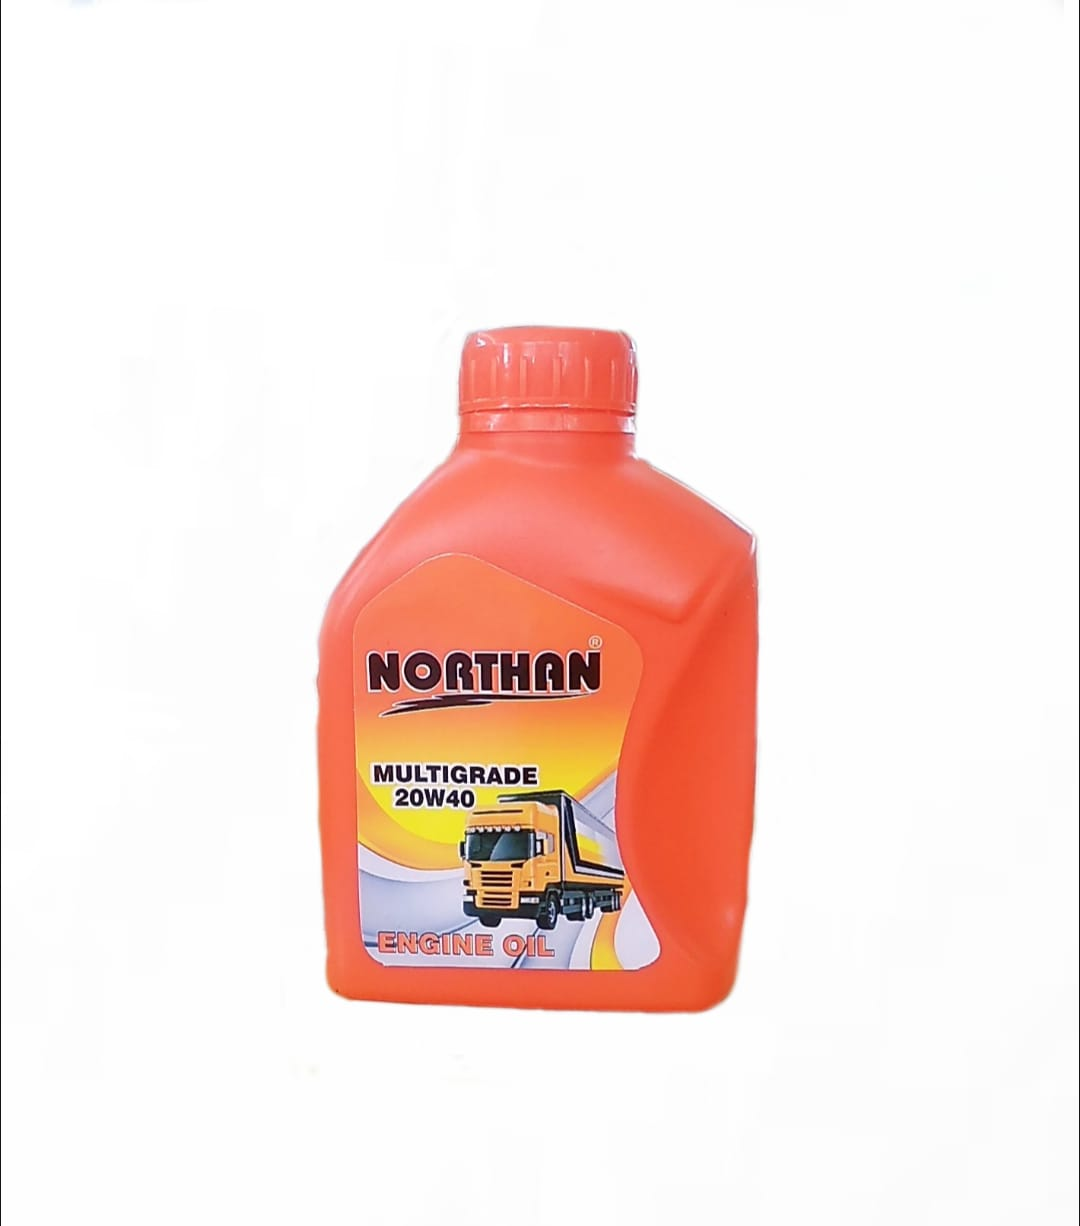 Multigrade 20W40 | Northan Lubricants |